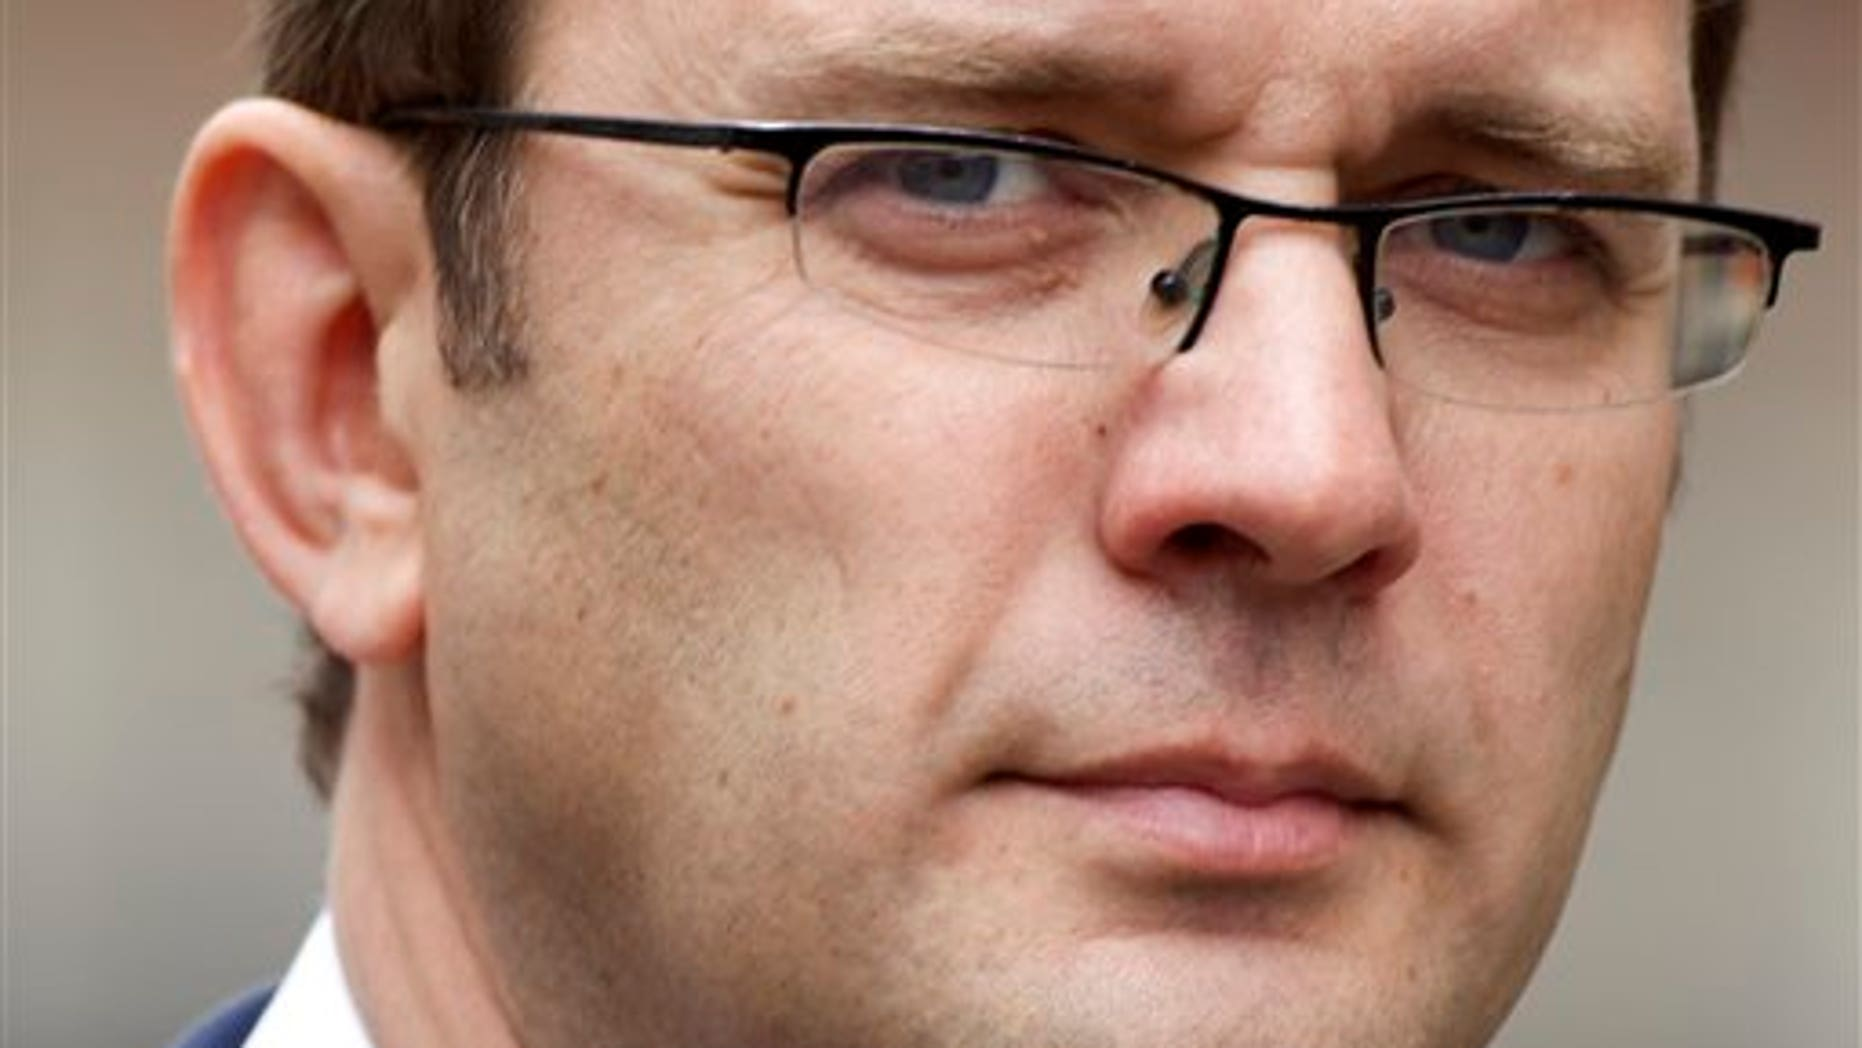 May 10, 2012: In this file photo, Andy Coulson, the former editor of the News of the World newspaper and former director of communications for Britain's Prime Minister David Cameron arrives to appear at the Leveson Inquiry at the High Court in London.